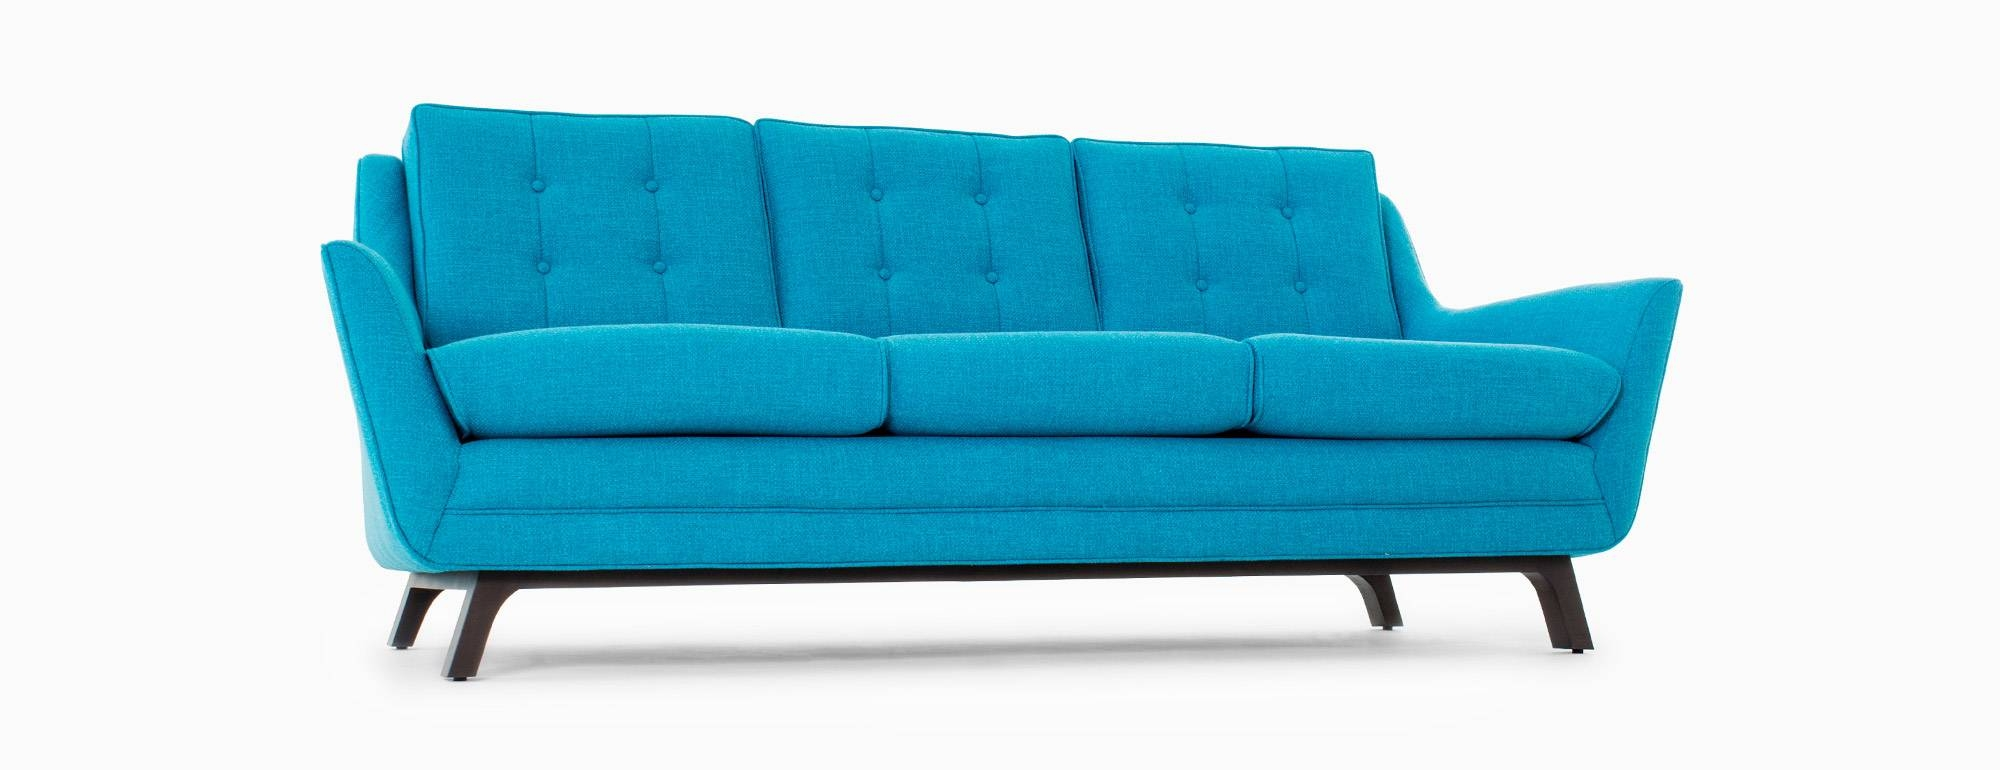 Eastwood Sofa | Joybird Regarding Stratford Sofas (View 20 of 30)